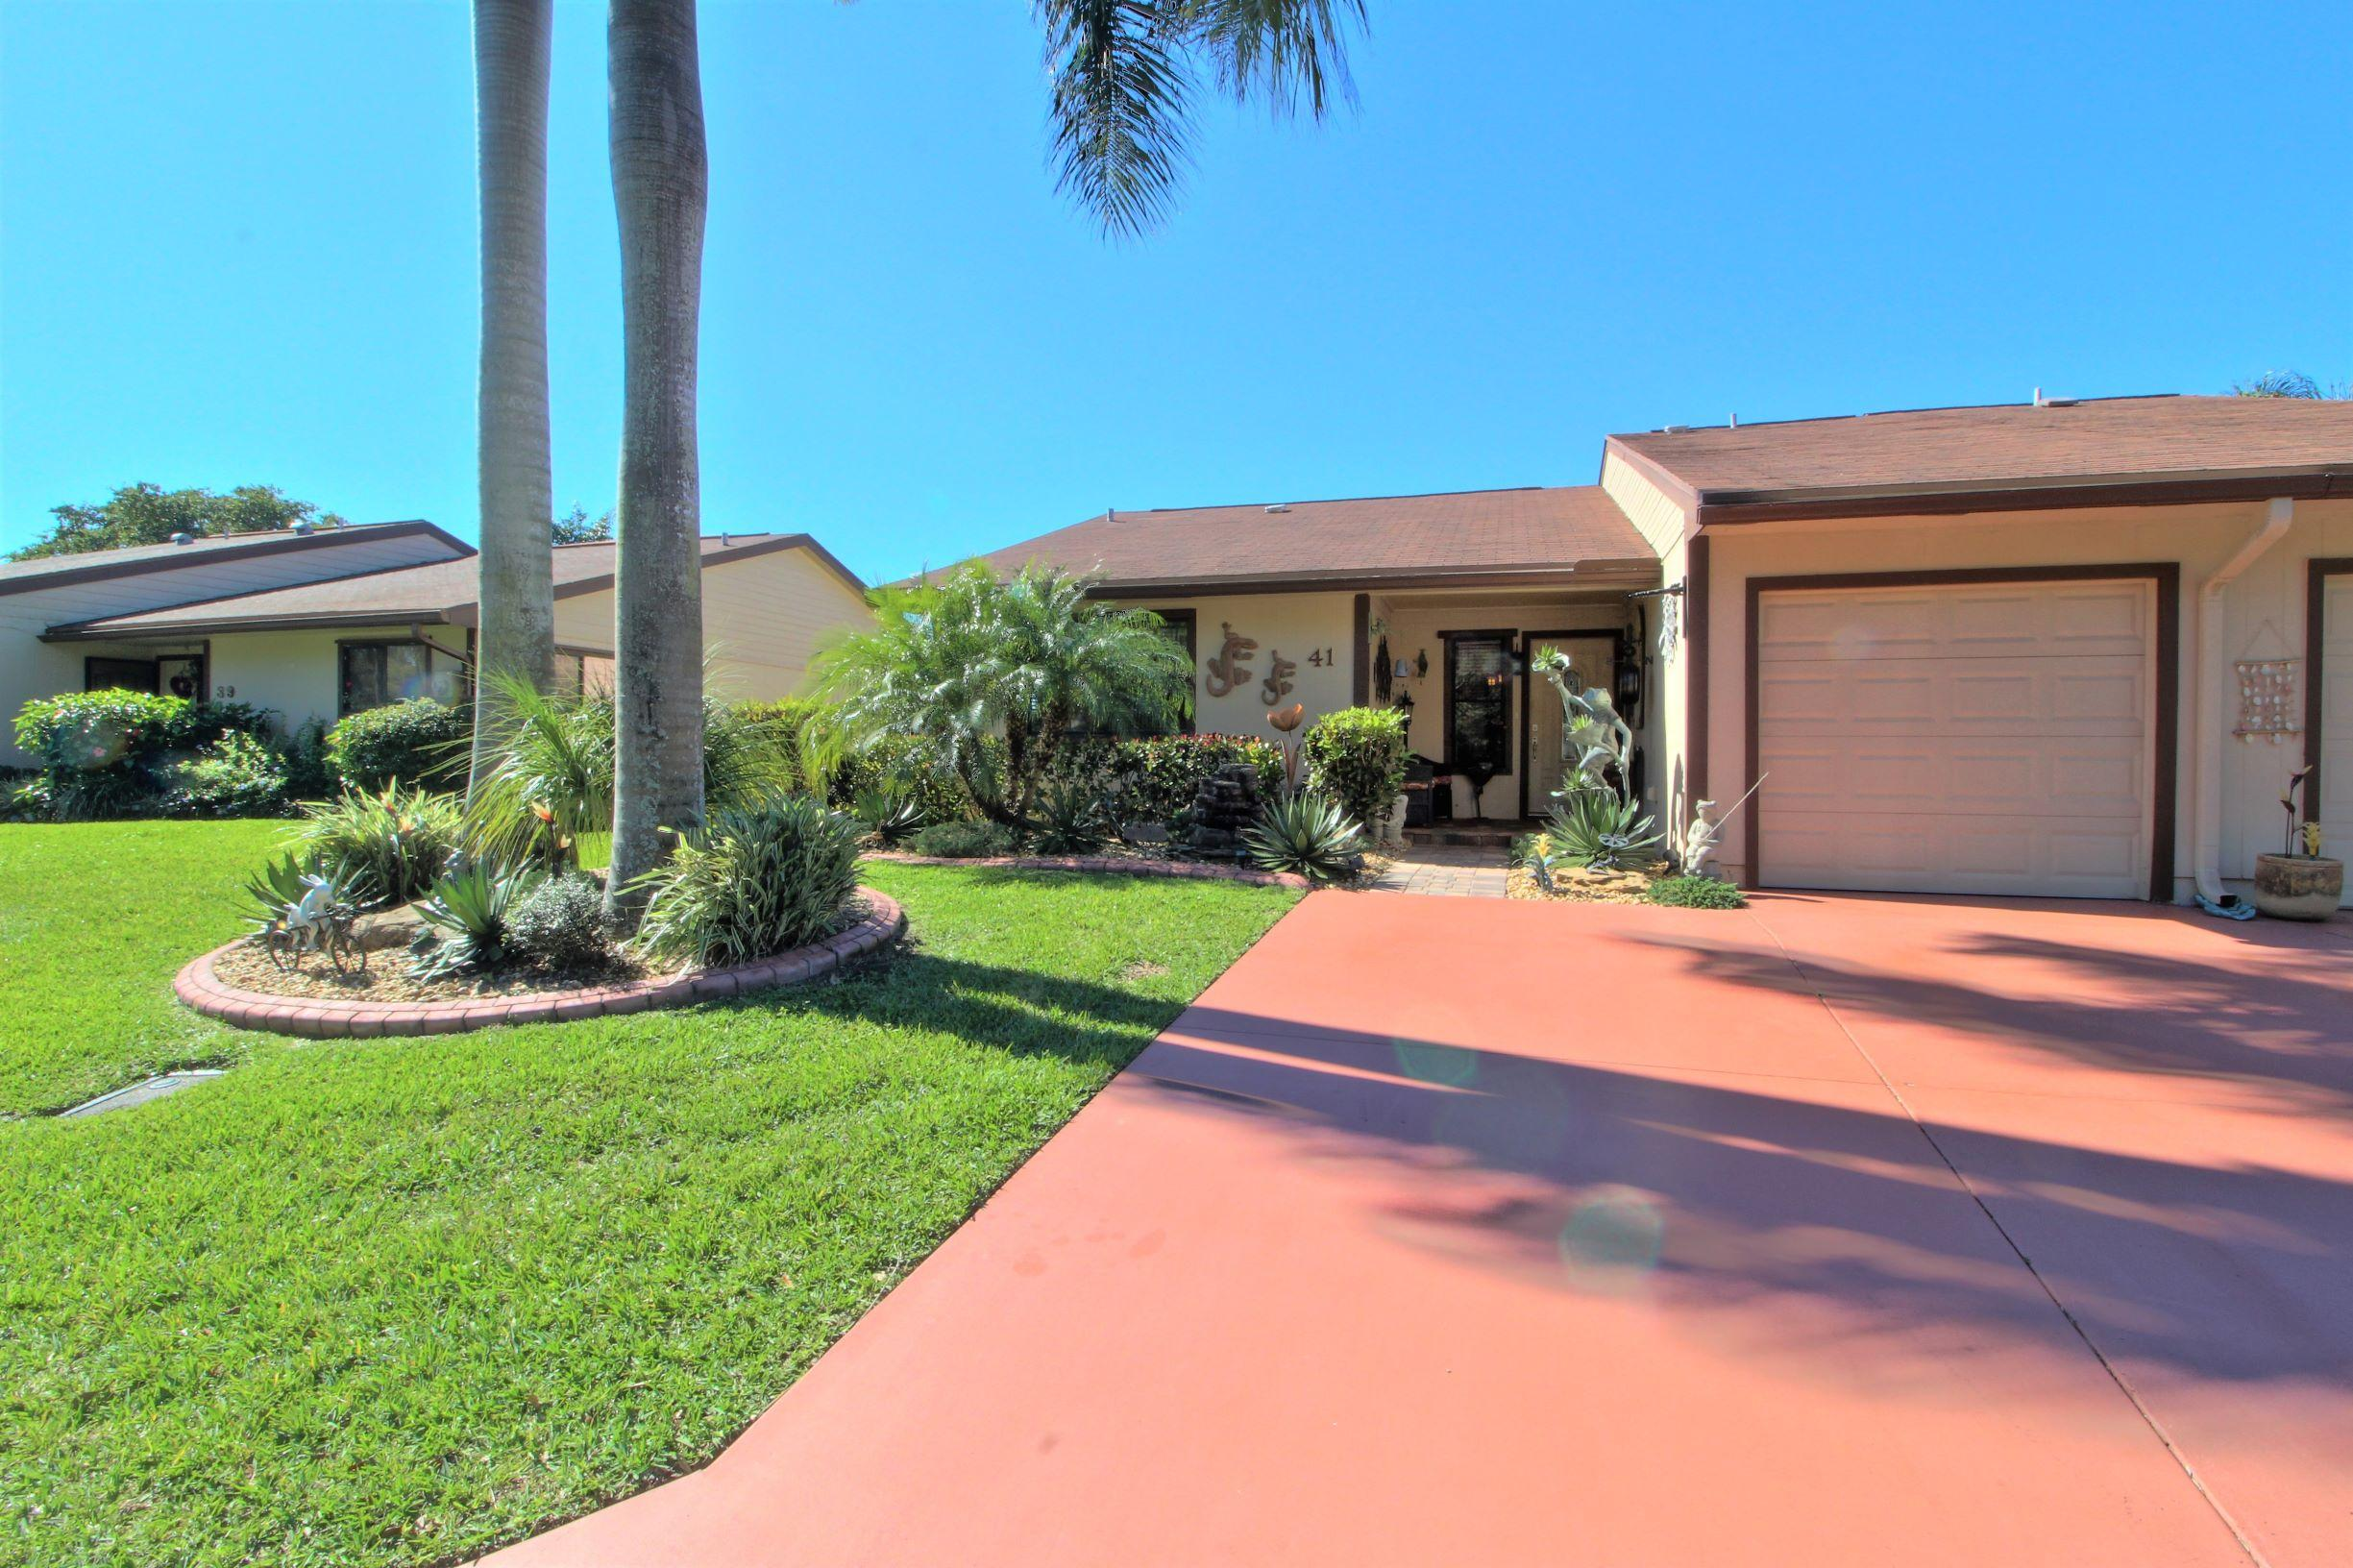 41 Mayfair Lane Boynton Beach, FL 33426